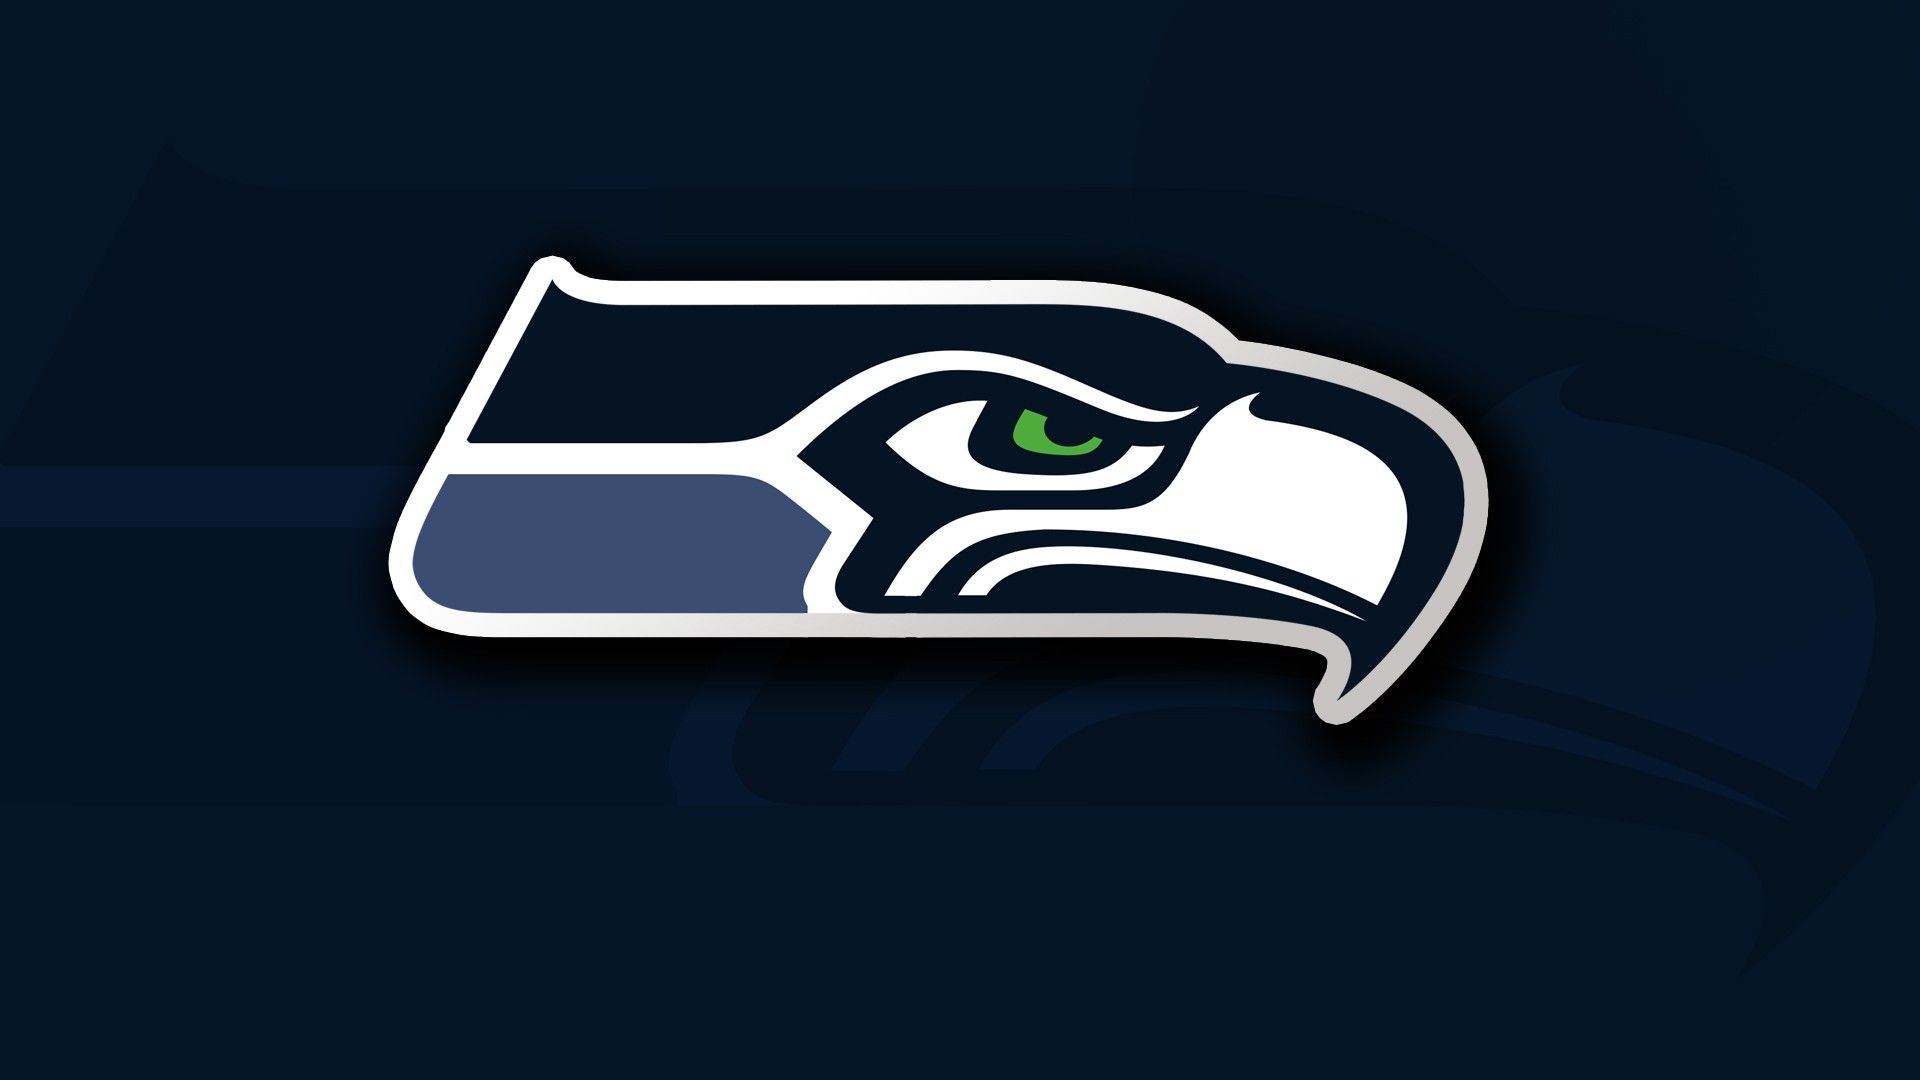 Seattle Seahawks Wallpaper HD Seattle seahawks logo